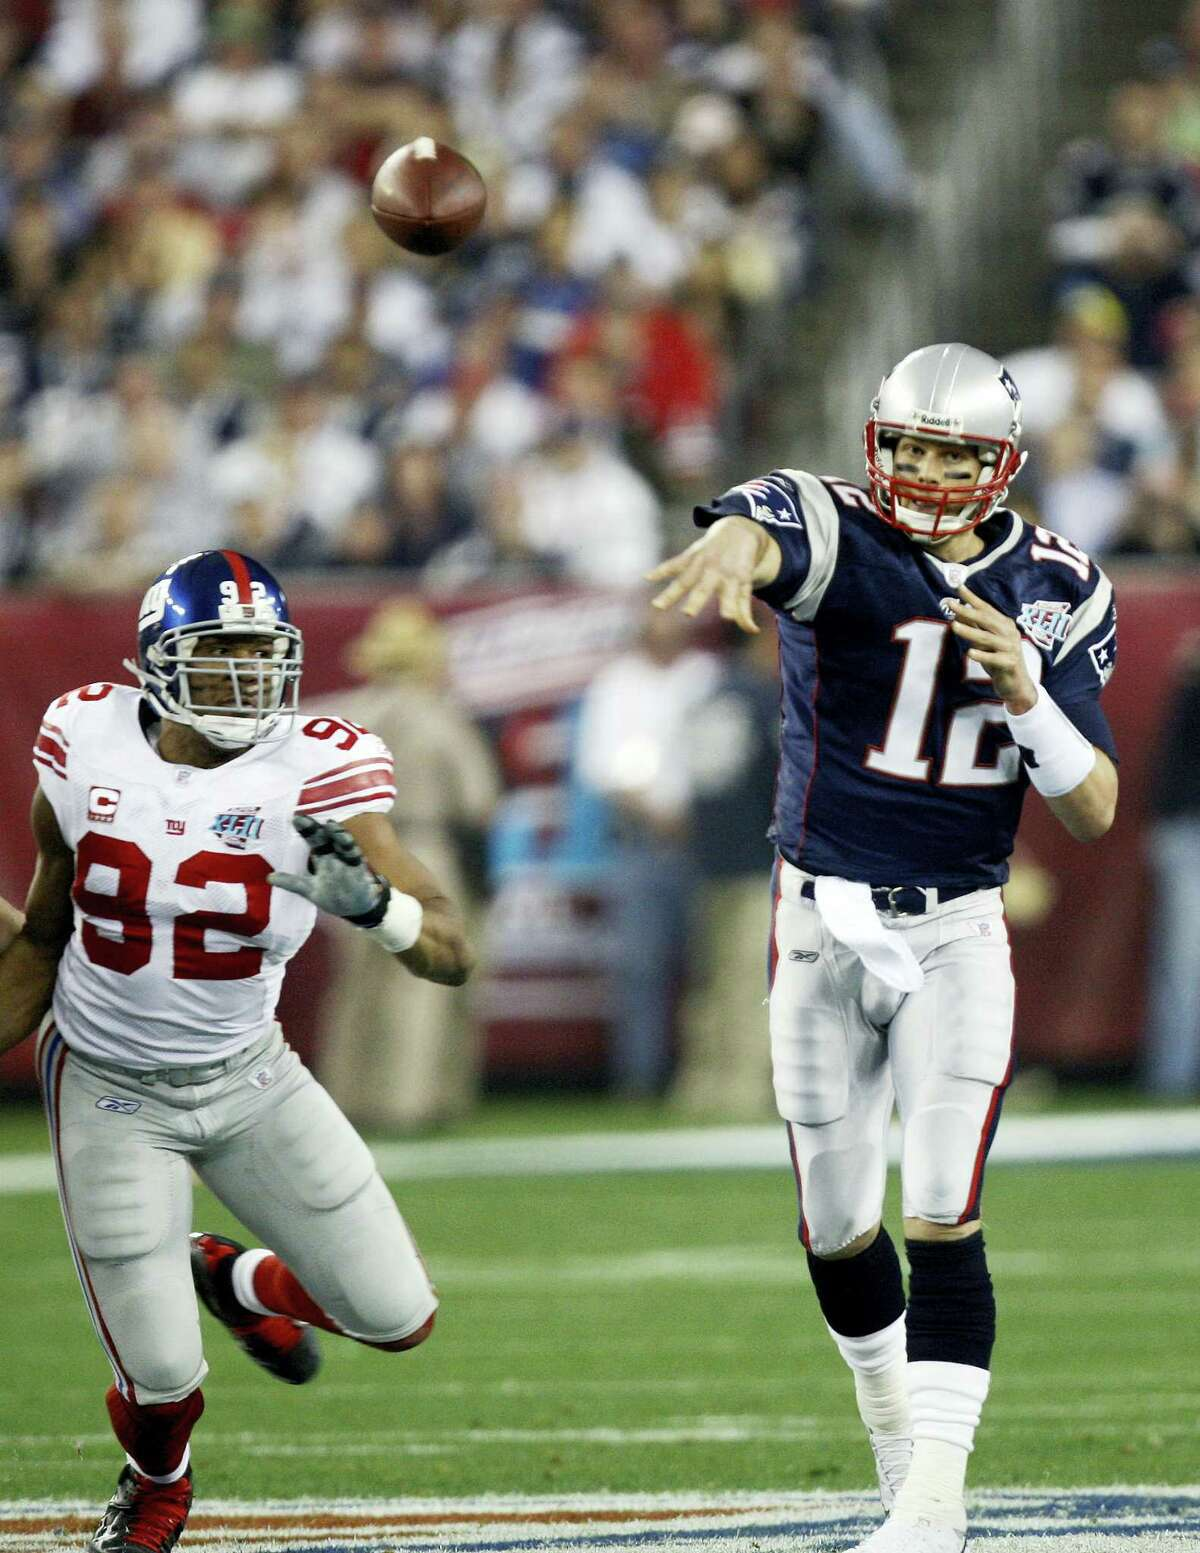 In this Feb. 3, 2008 photo, New England Patriots quarterback Tom Brady, right, throws a pass in front of New York Giants defensive end Michael Strahan during the Super Bowl XLII football game at University of Phoenix Stadium in Glendale, Ariz. The one-time rivals are teaming up to produce a documentary series called the 'Religion of Sports,' to air beginning Nov. 15, 2016, on DirectTV's Audience Network. Each hour-long episode will look at how unique sports competitions are influencing societies and cultures across the globe.